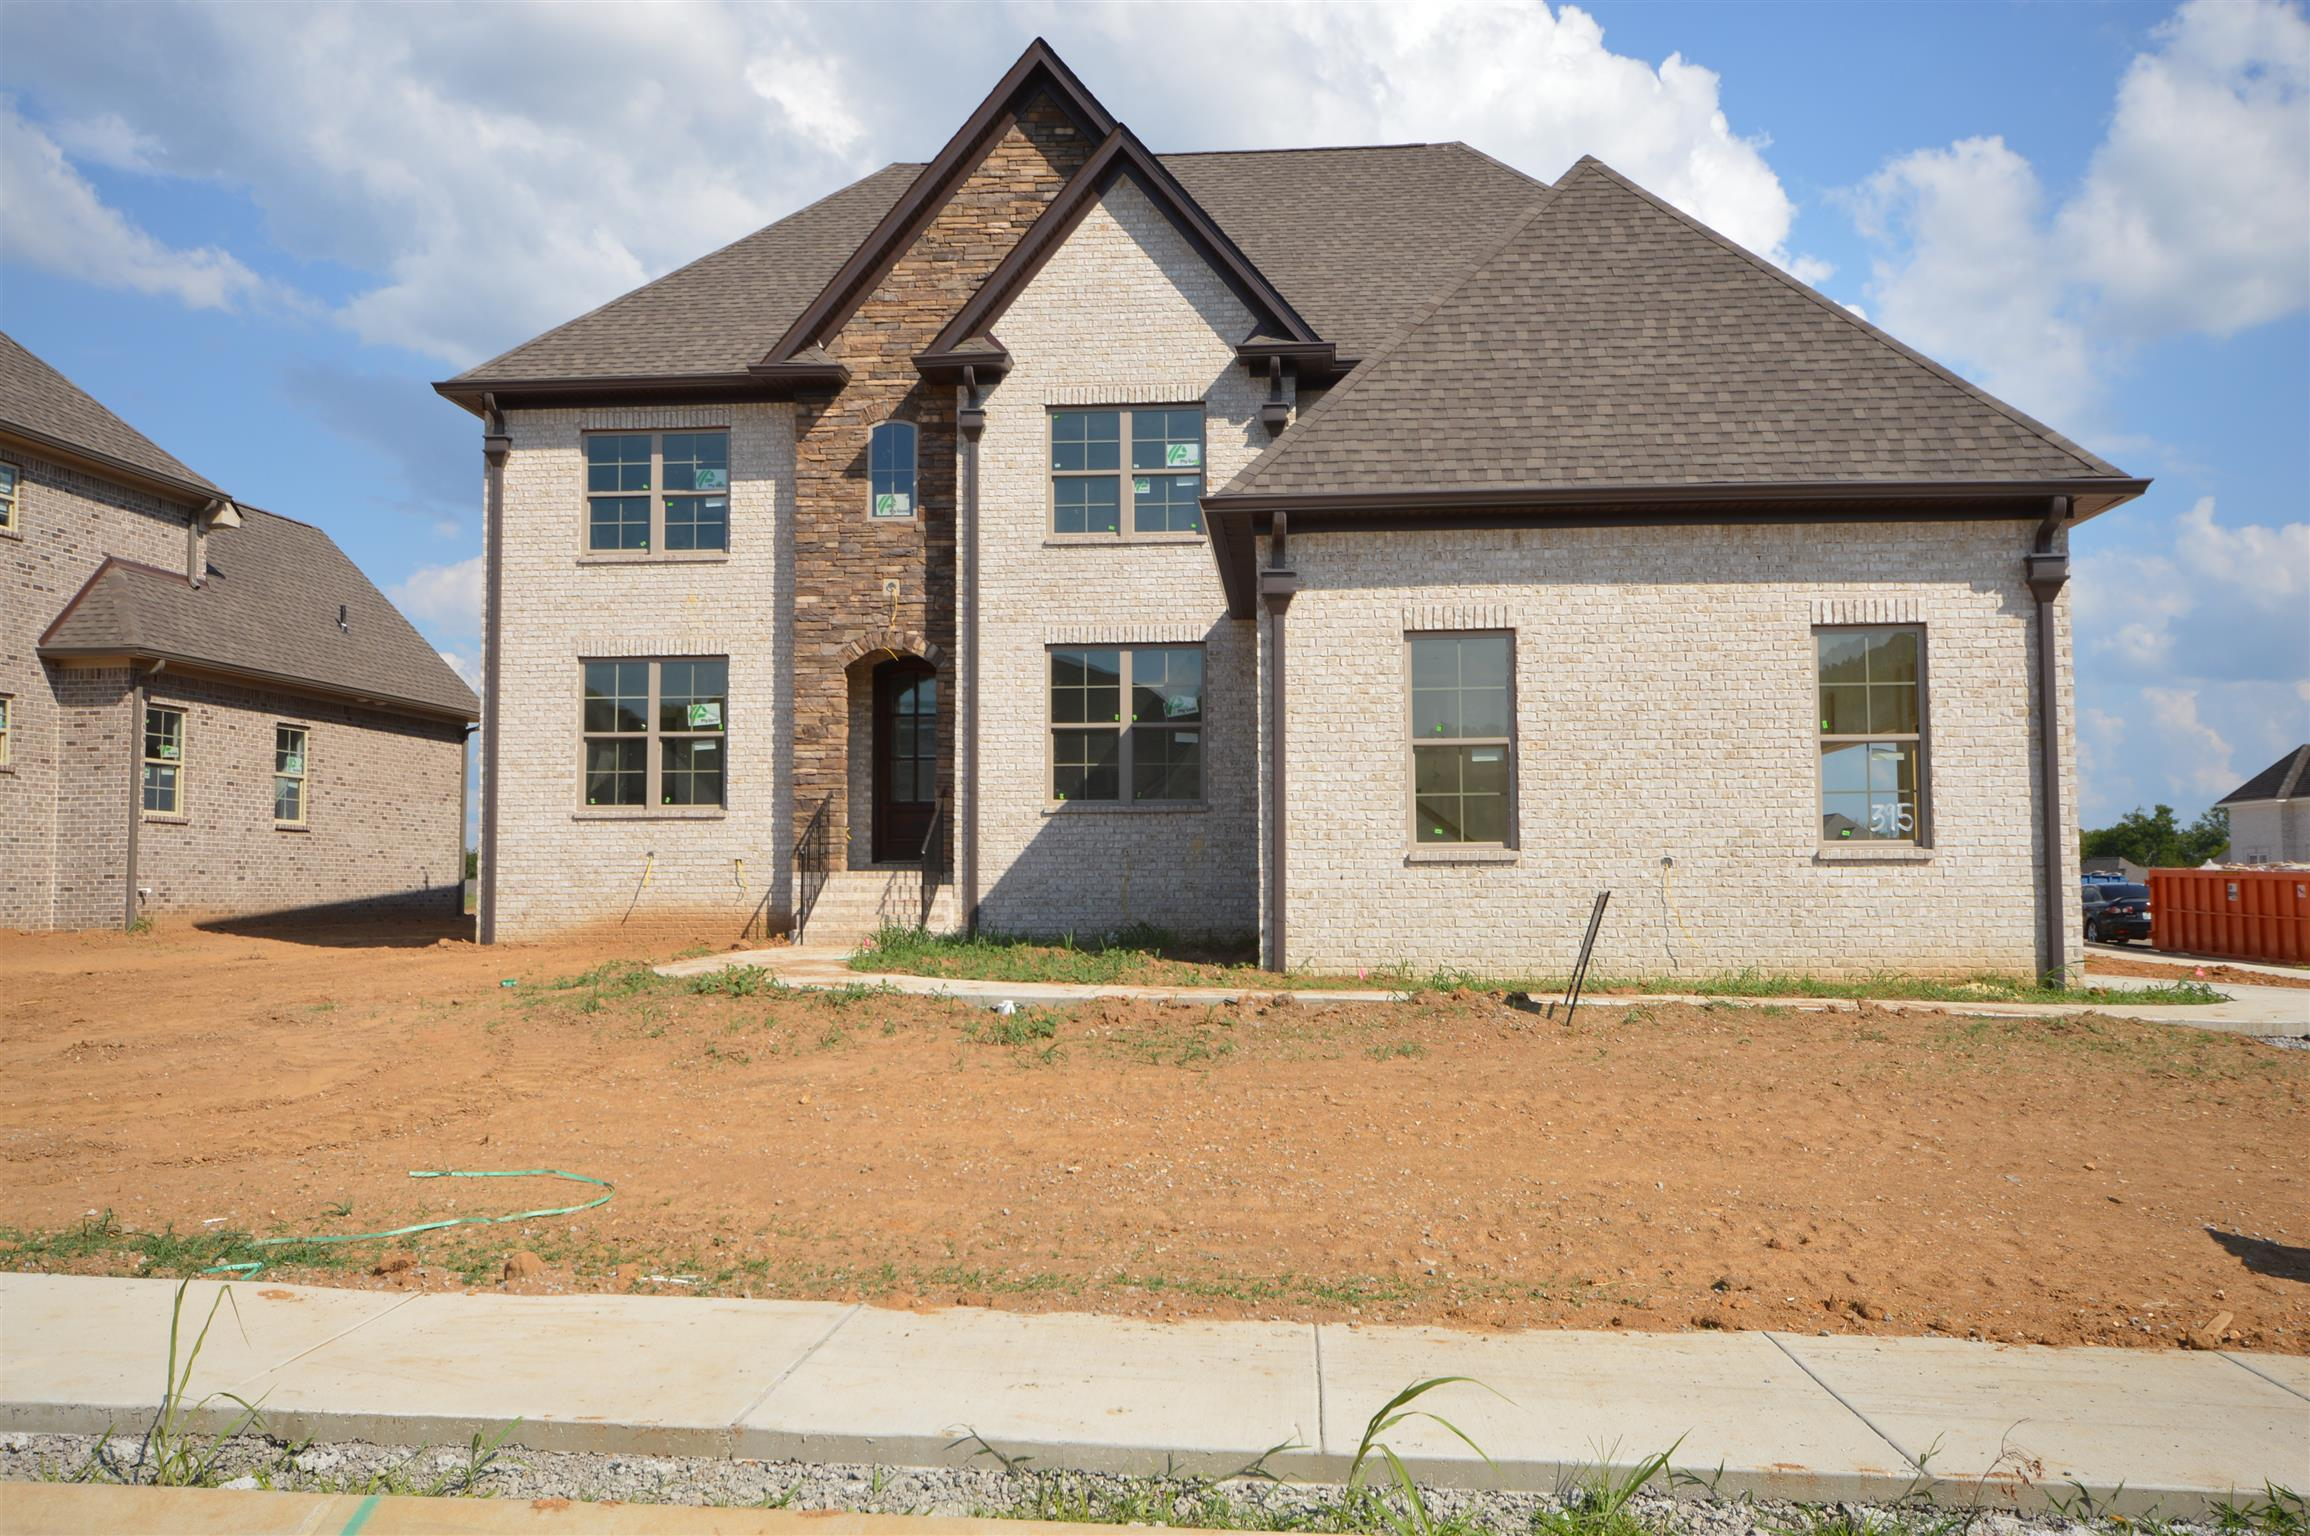 4076 Miles Johnson Pkwy (395) 37174 - One of Spring Hill Homes for Sale